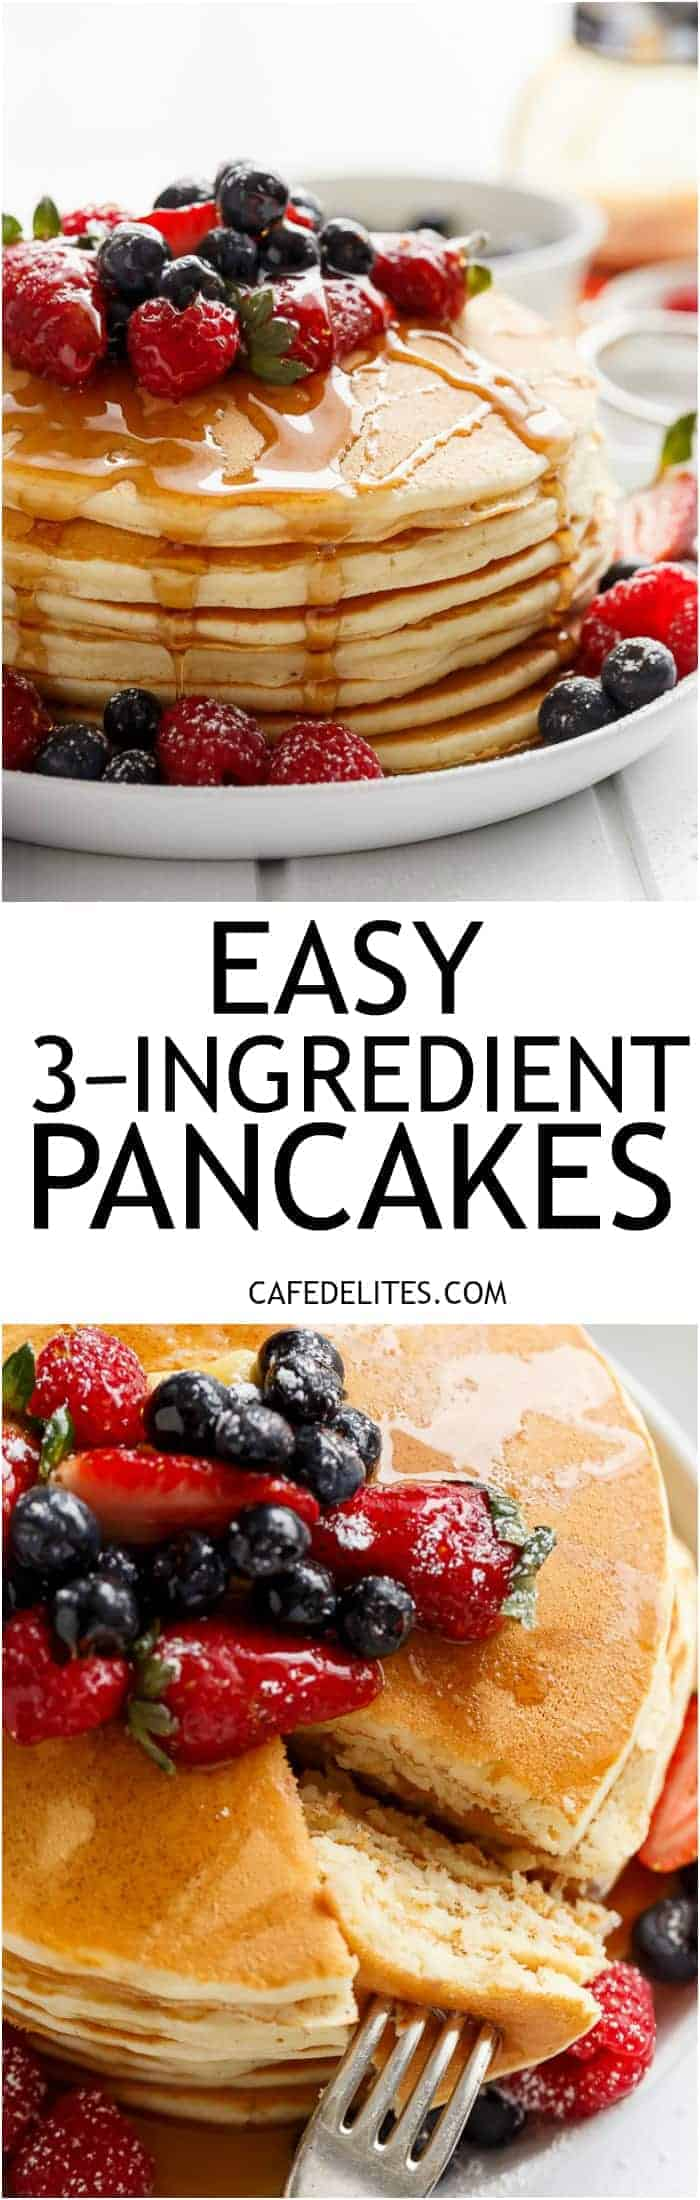 Easy 3 ingredient pancakes cafe delites 3 ingredient pancakes are fluffy and super soft with the added bonus of no oil ccuart Image collections